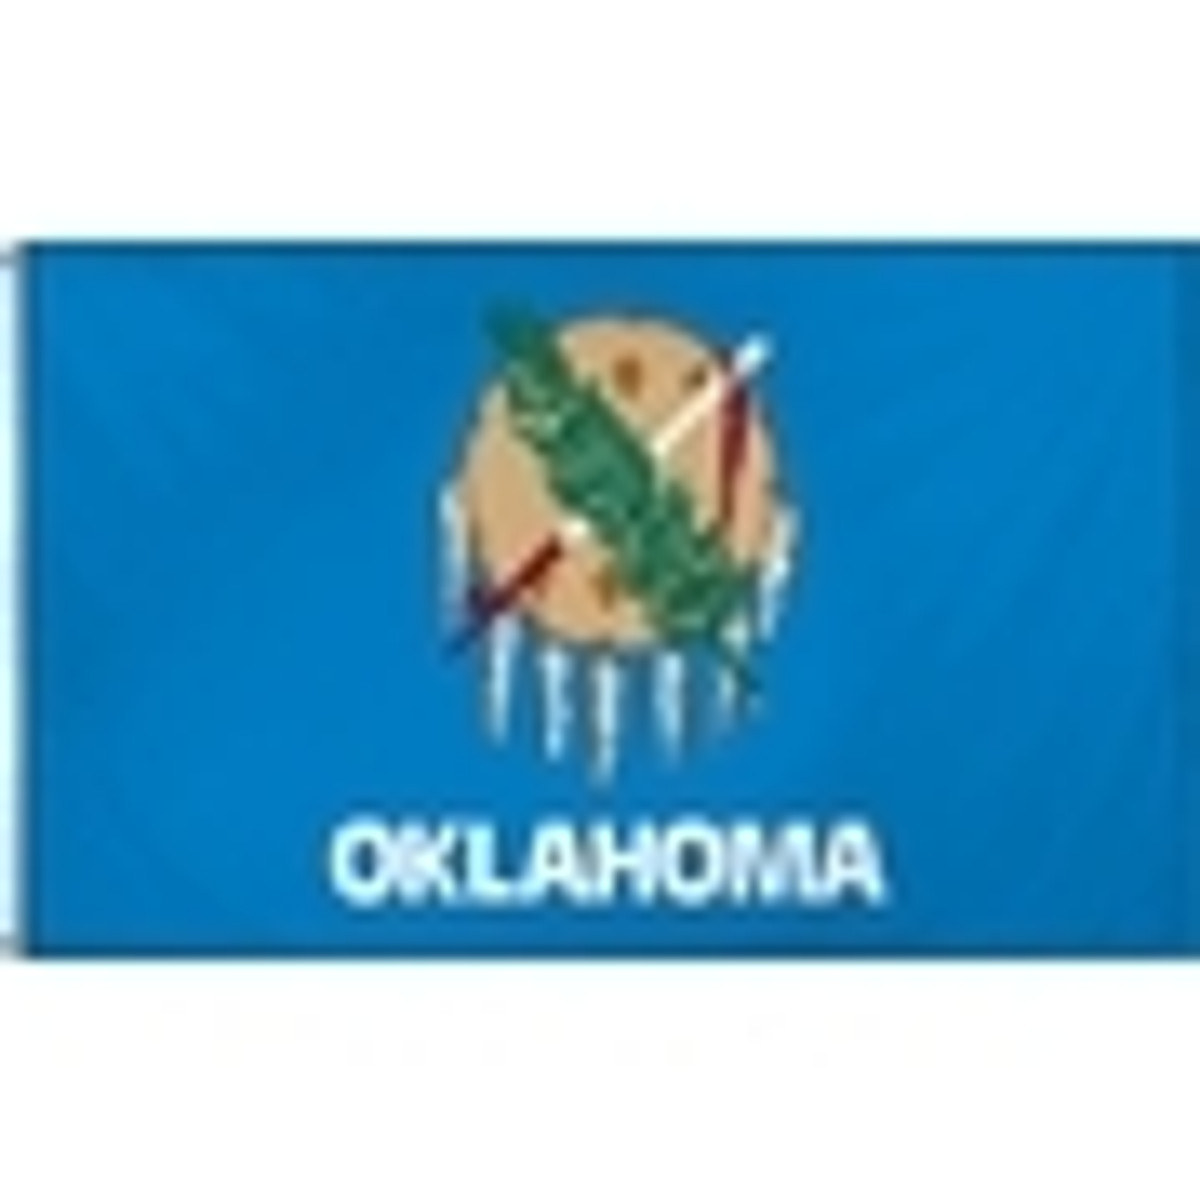 US State Flags 2ftx3ft Nylon